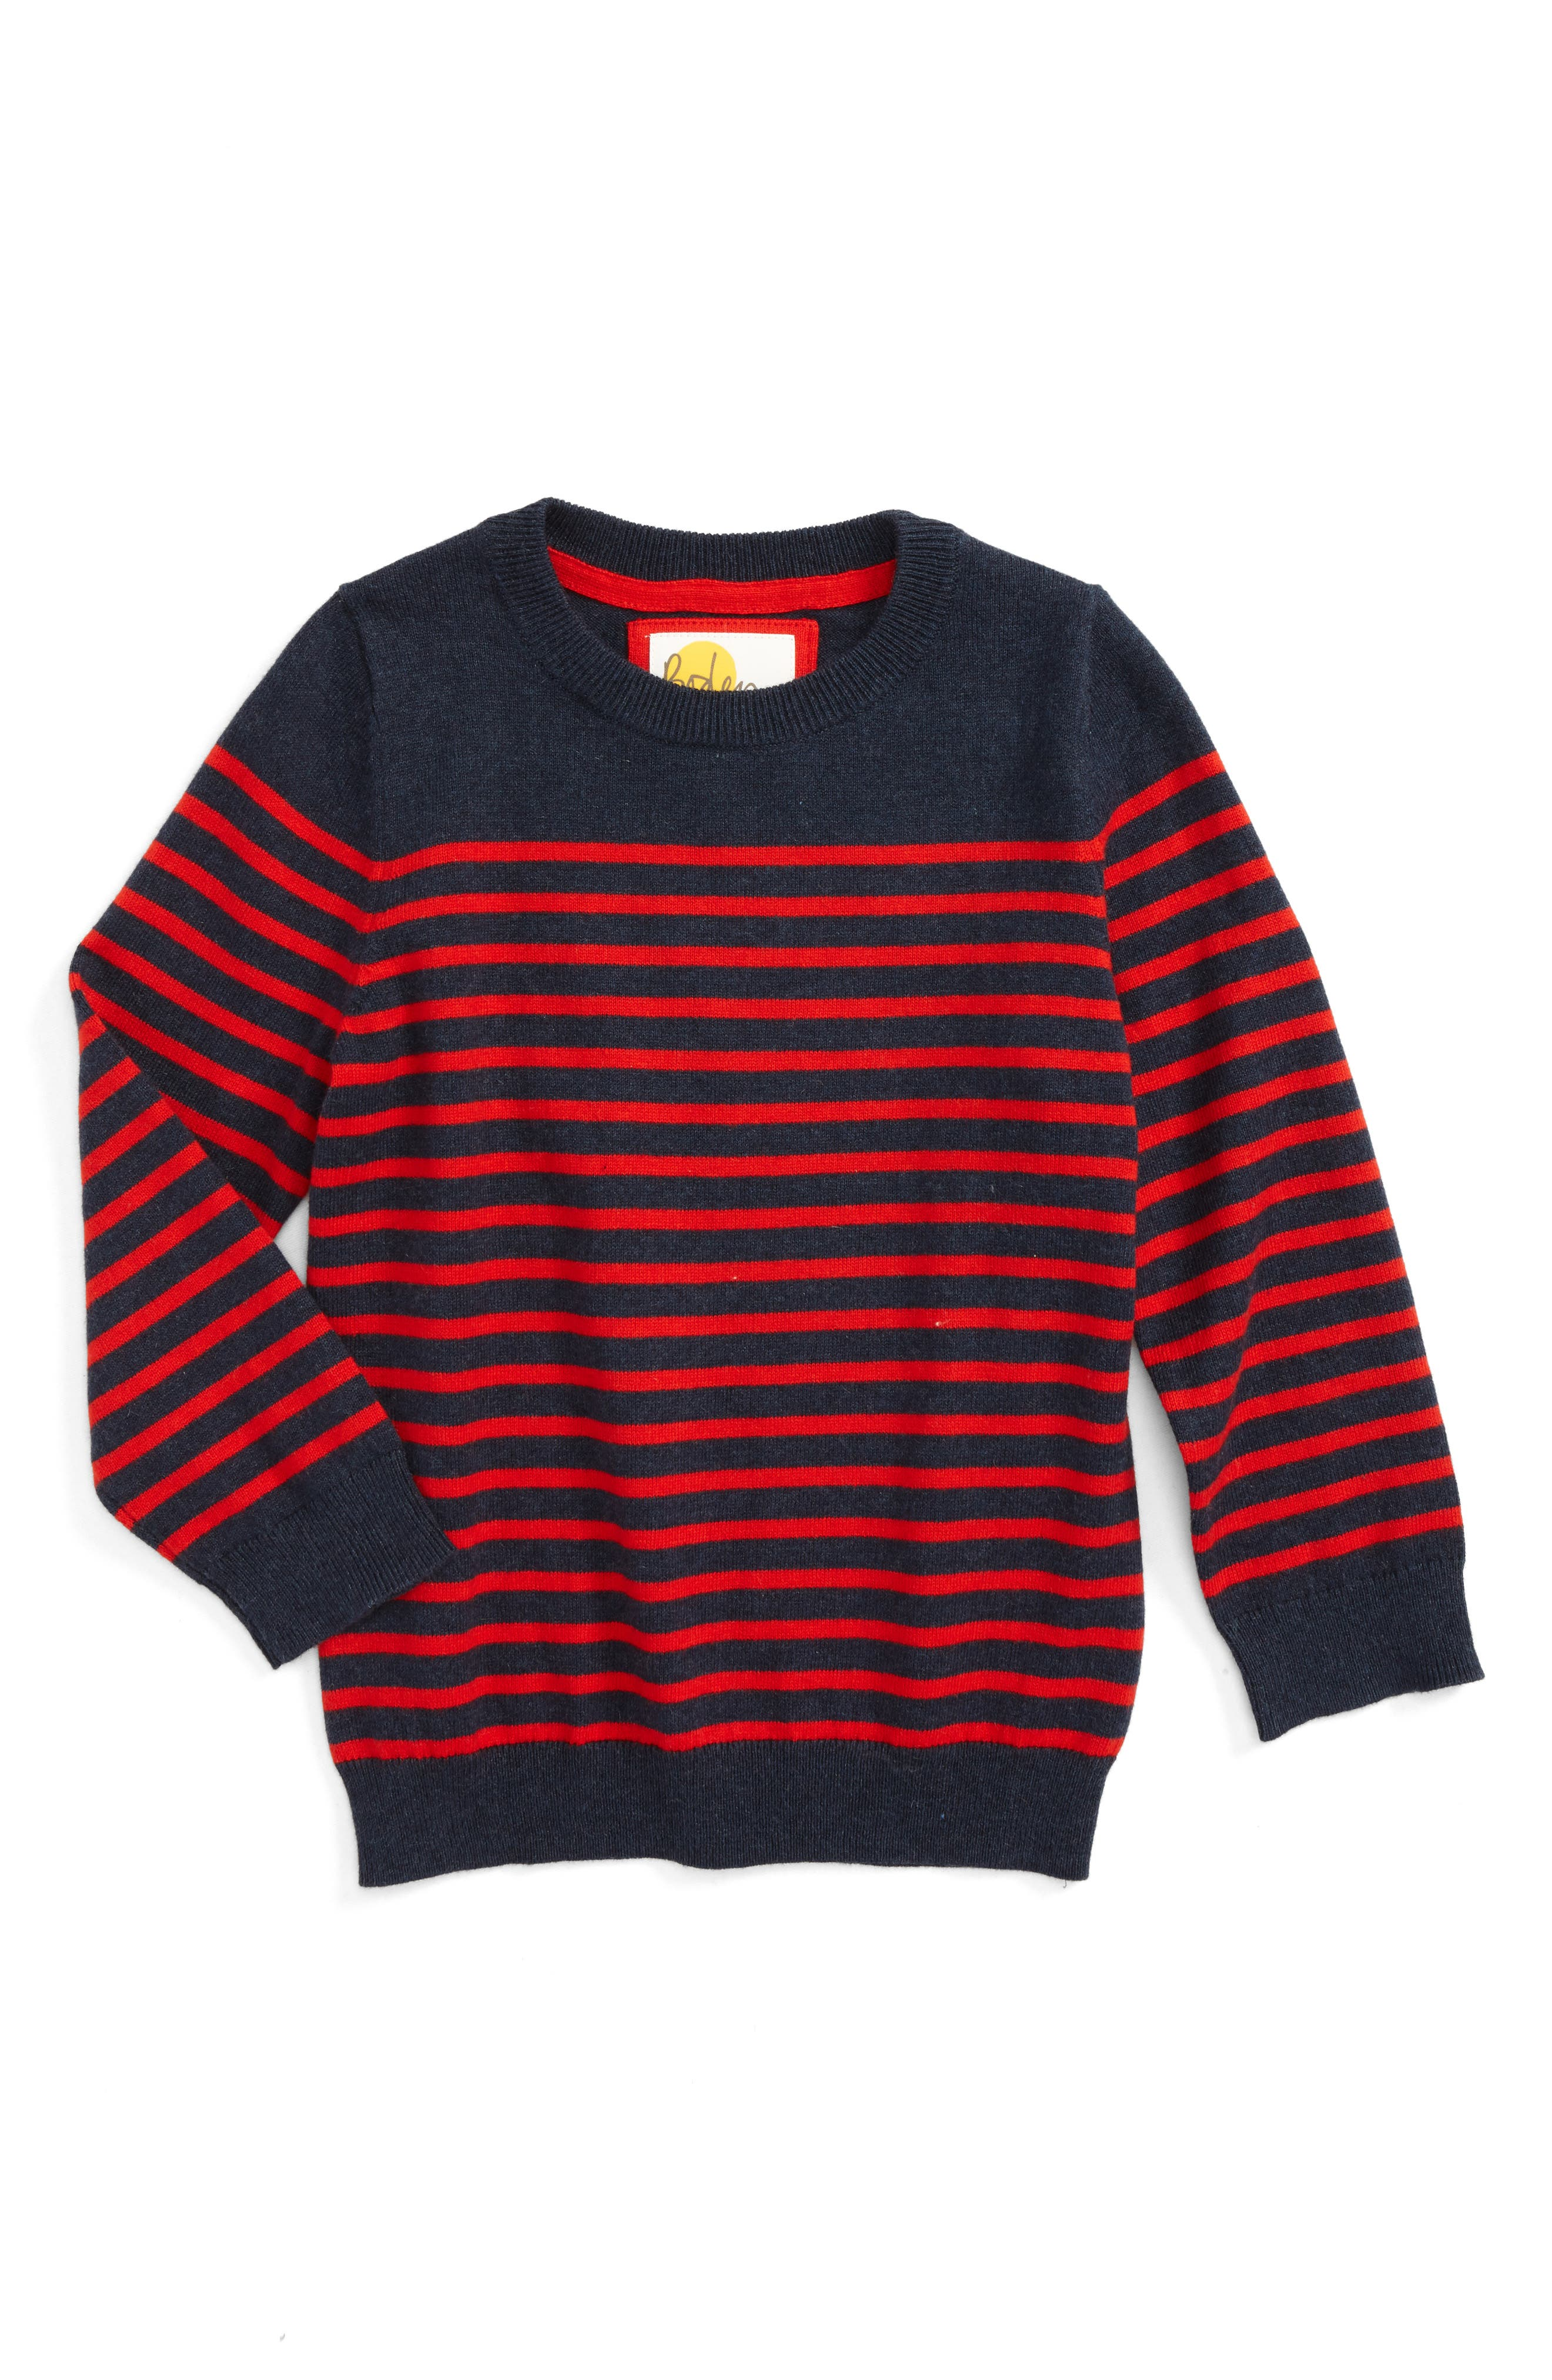 Stripe Sweater,                             Main thumbnail 1, color,                             Navy/ Beatnik Red